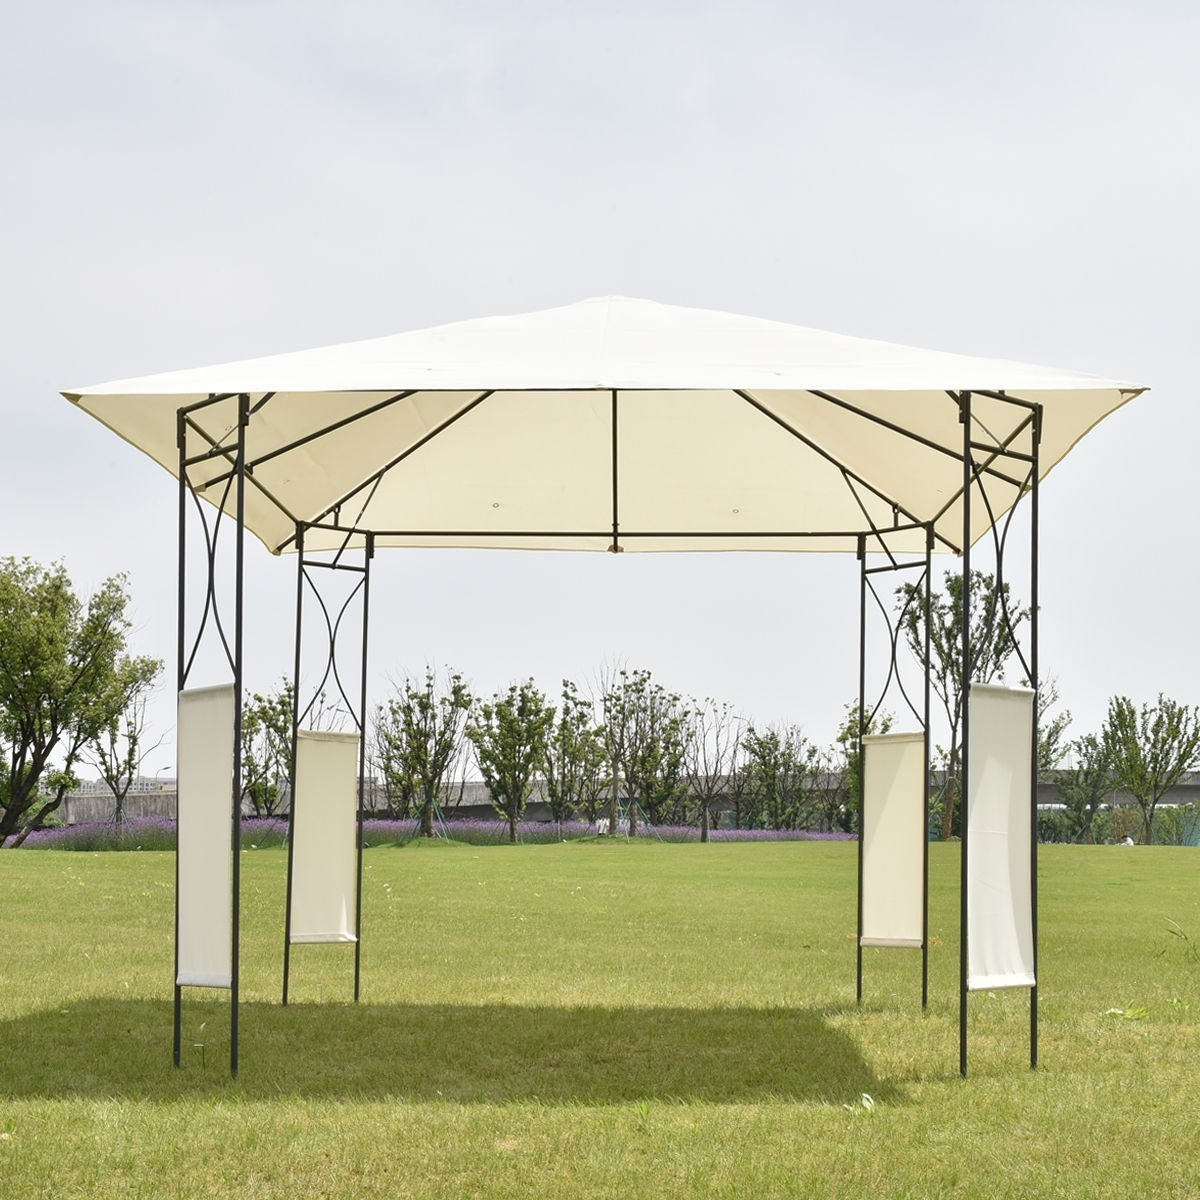 New MTN-G MTN-G 10'x10' Square Gazebo Canopy Tent Shelter Awning Garden Patio W Beige Cover by MTN Gearsmith